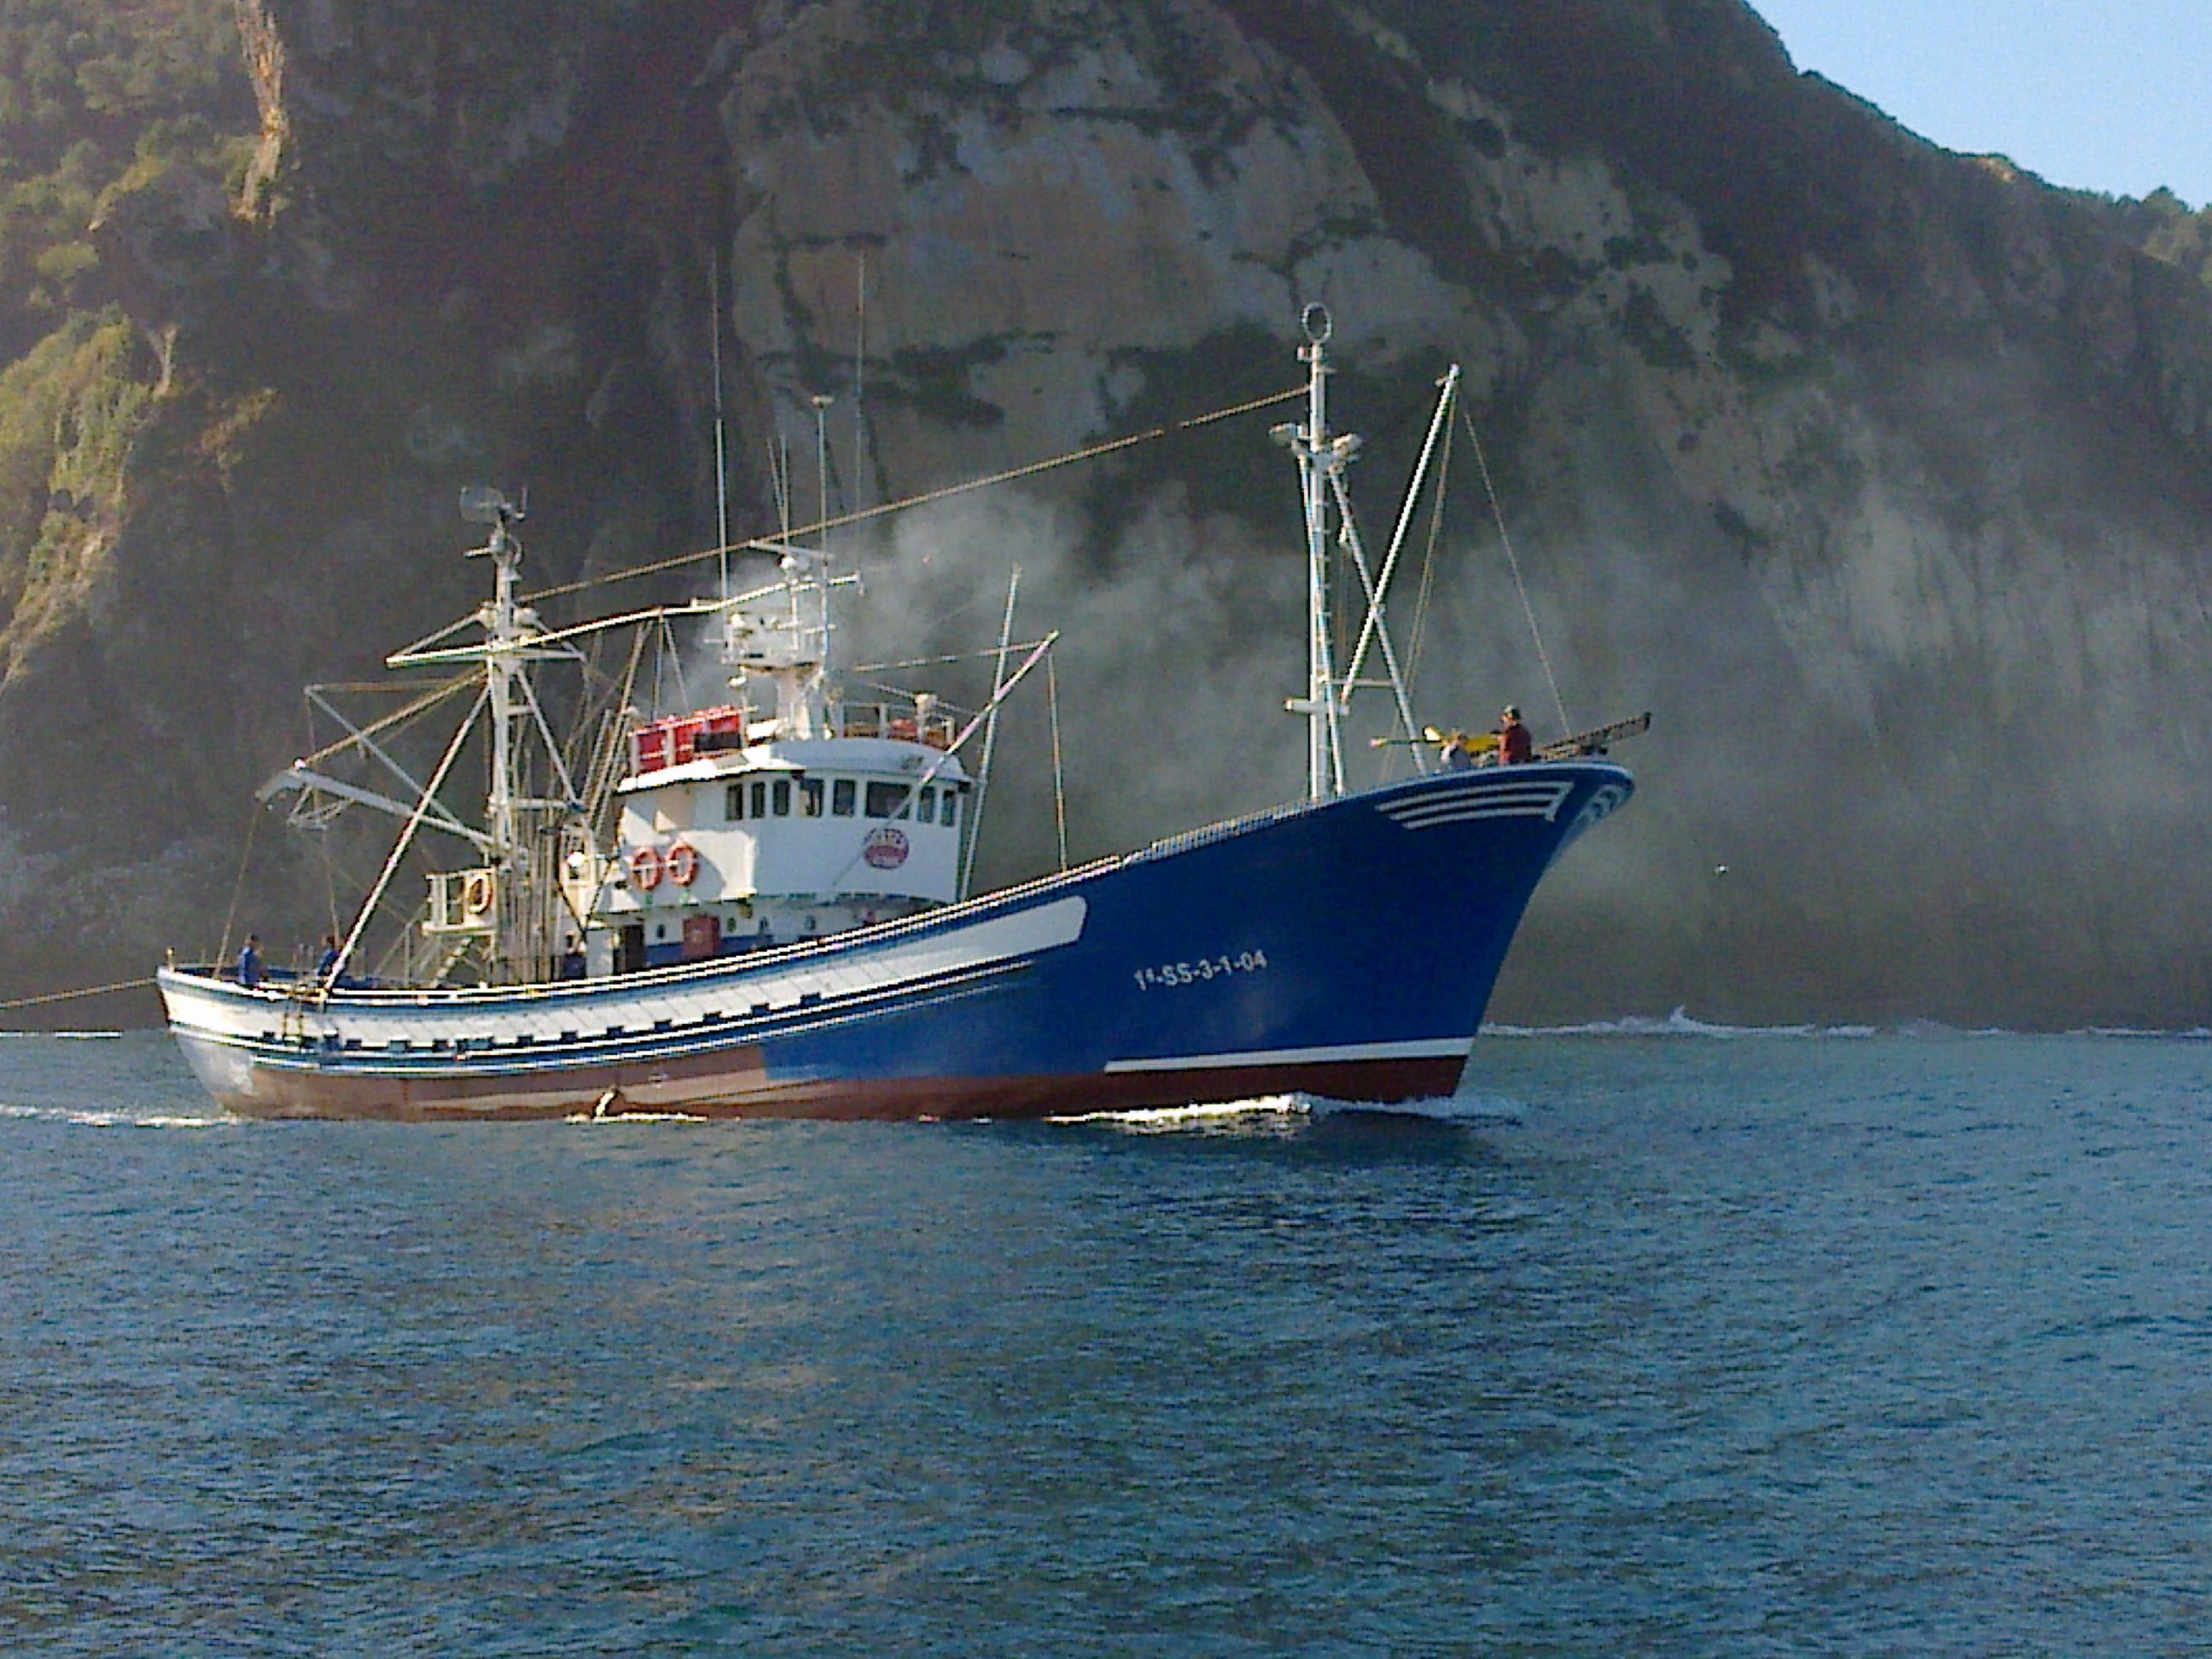 A typical fishing ship   Boats - Big and Little that I like the ...